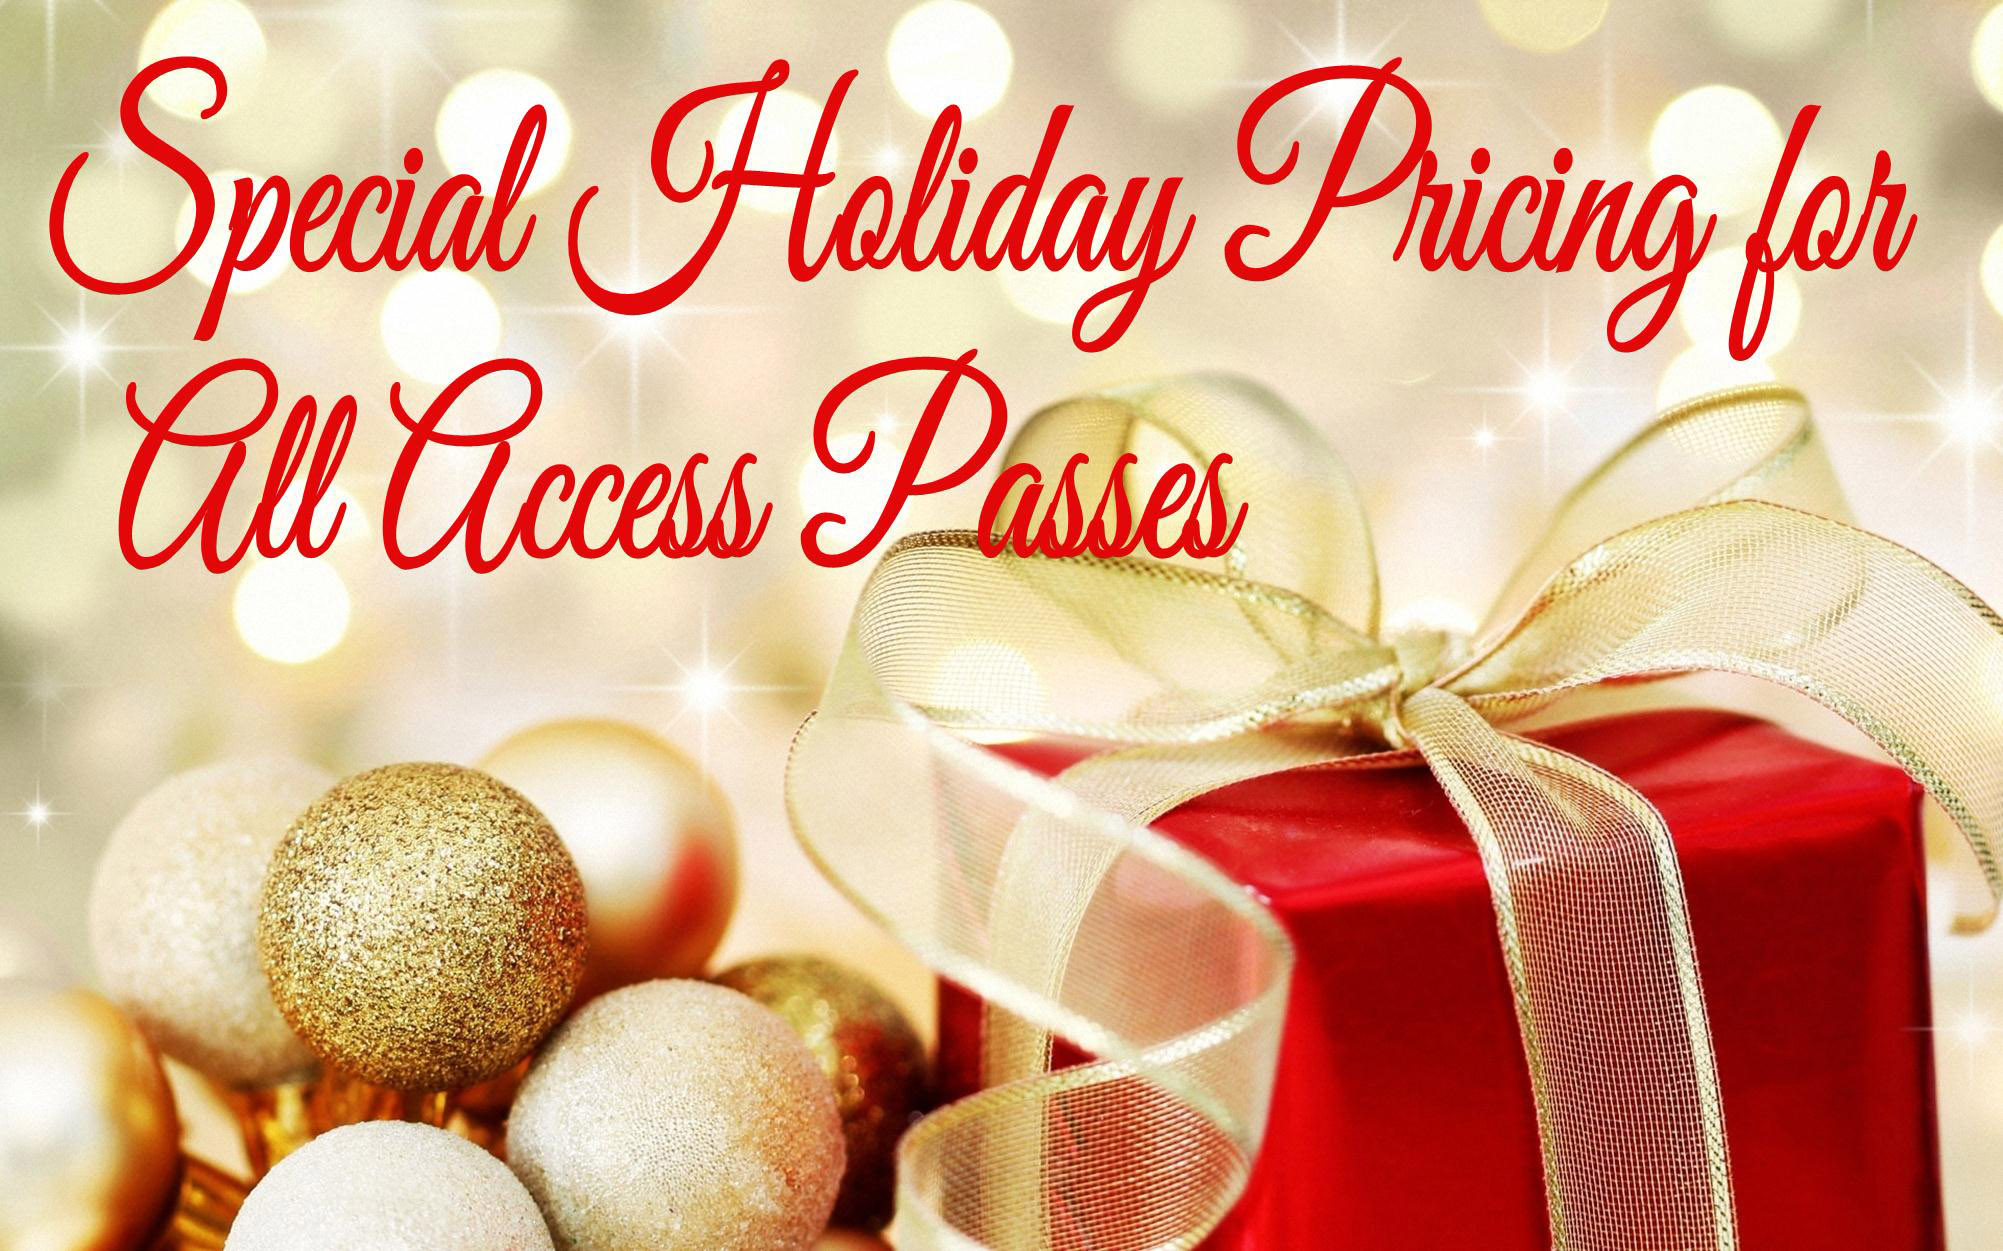 Holiday Pricing on #KCParks All Access Annual Passes Begins on Black Friday